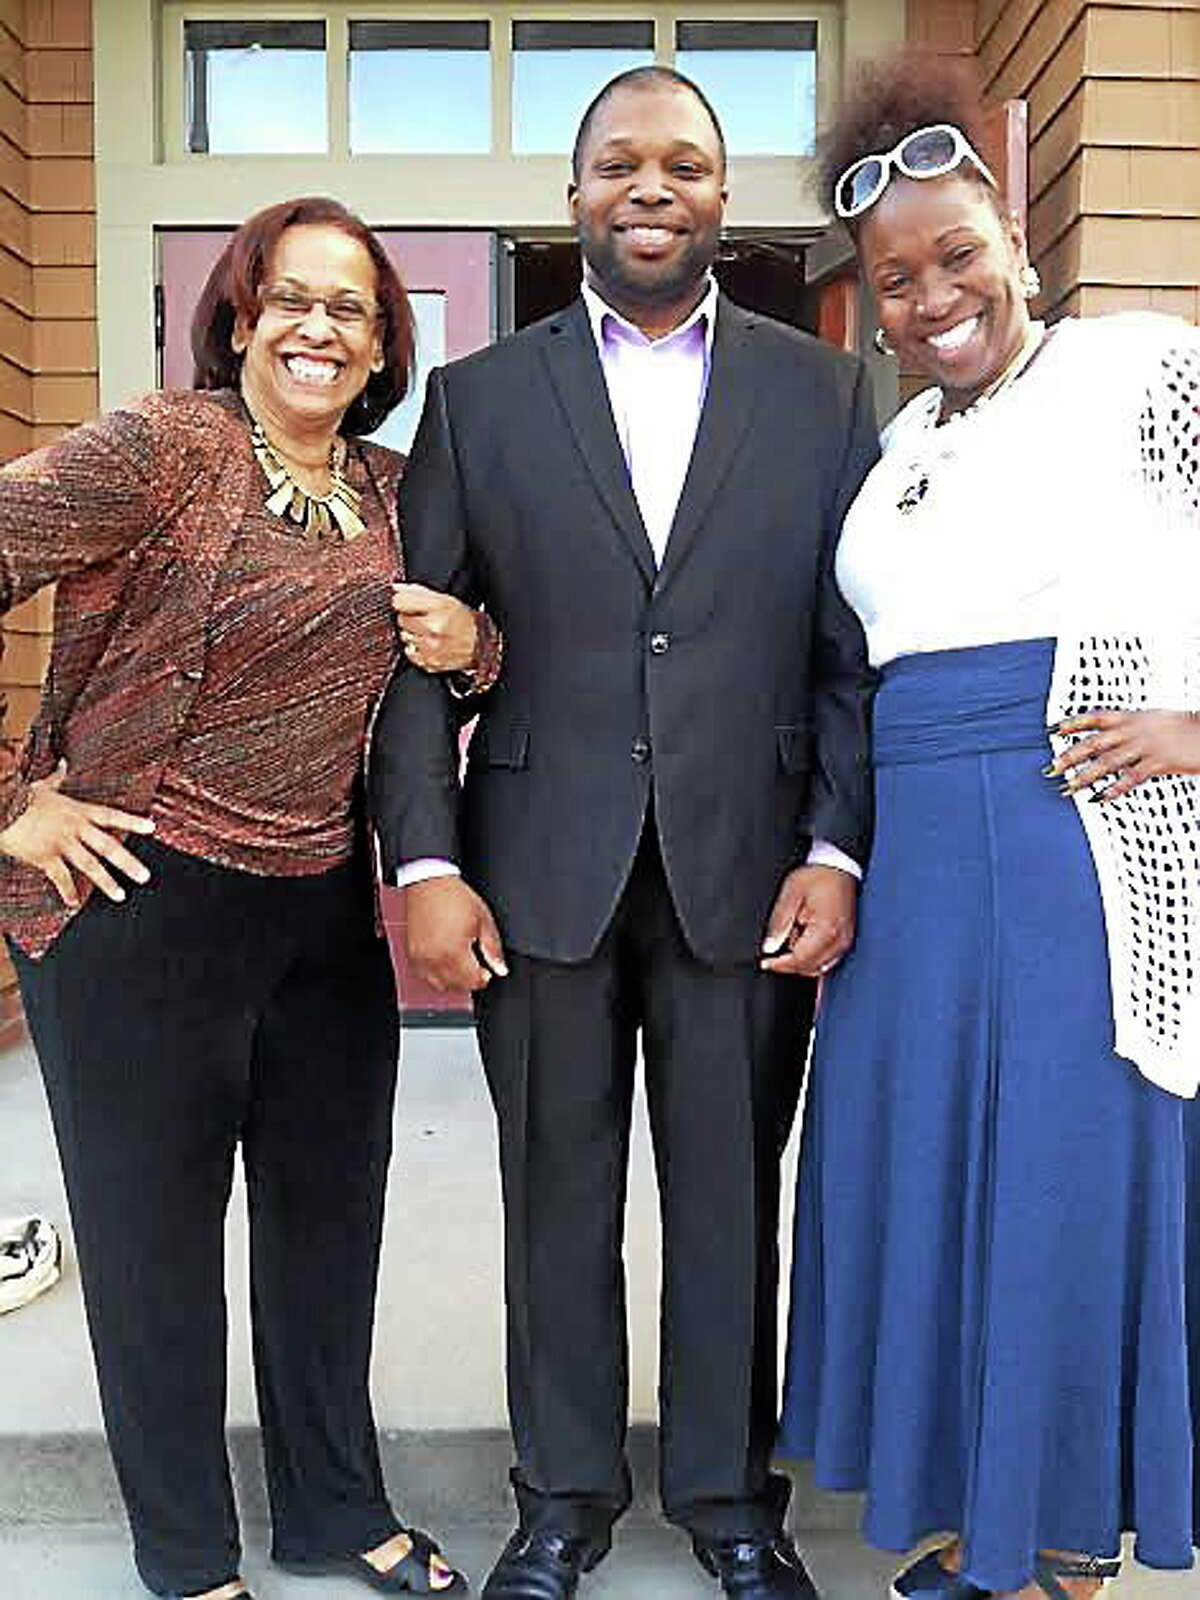 State Sen Gary Holder-Winfield, D10th, center was nominating for 2nd term in Senate Monday. At left is state Rep. Toni Walker with state Rep. Robyn Porter, right.